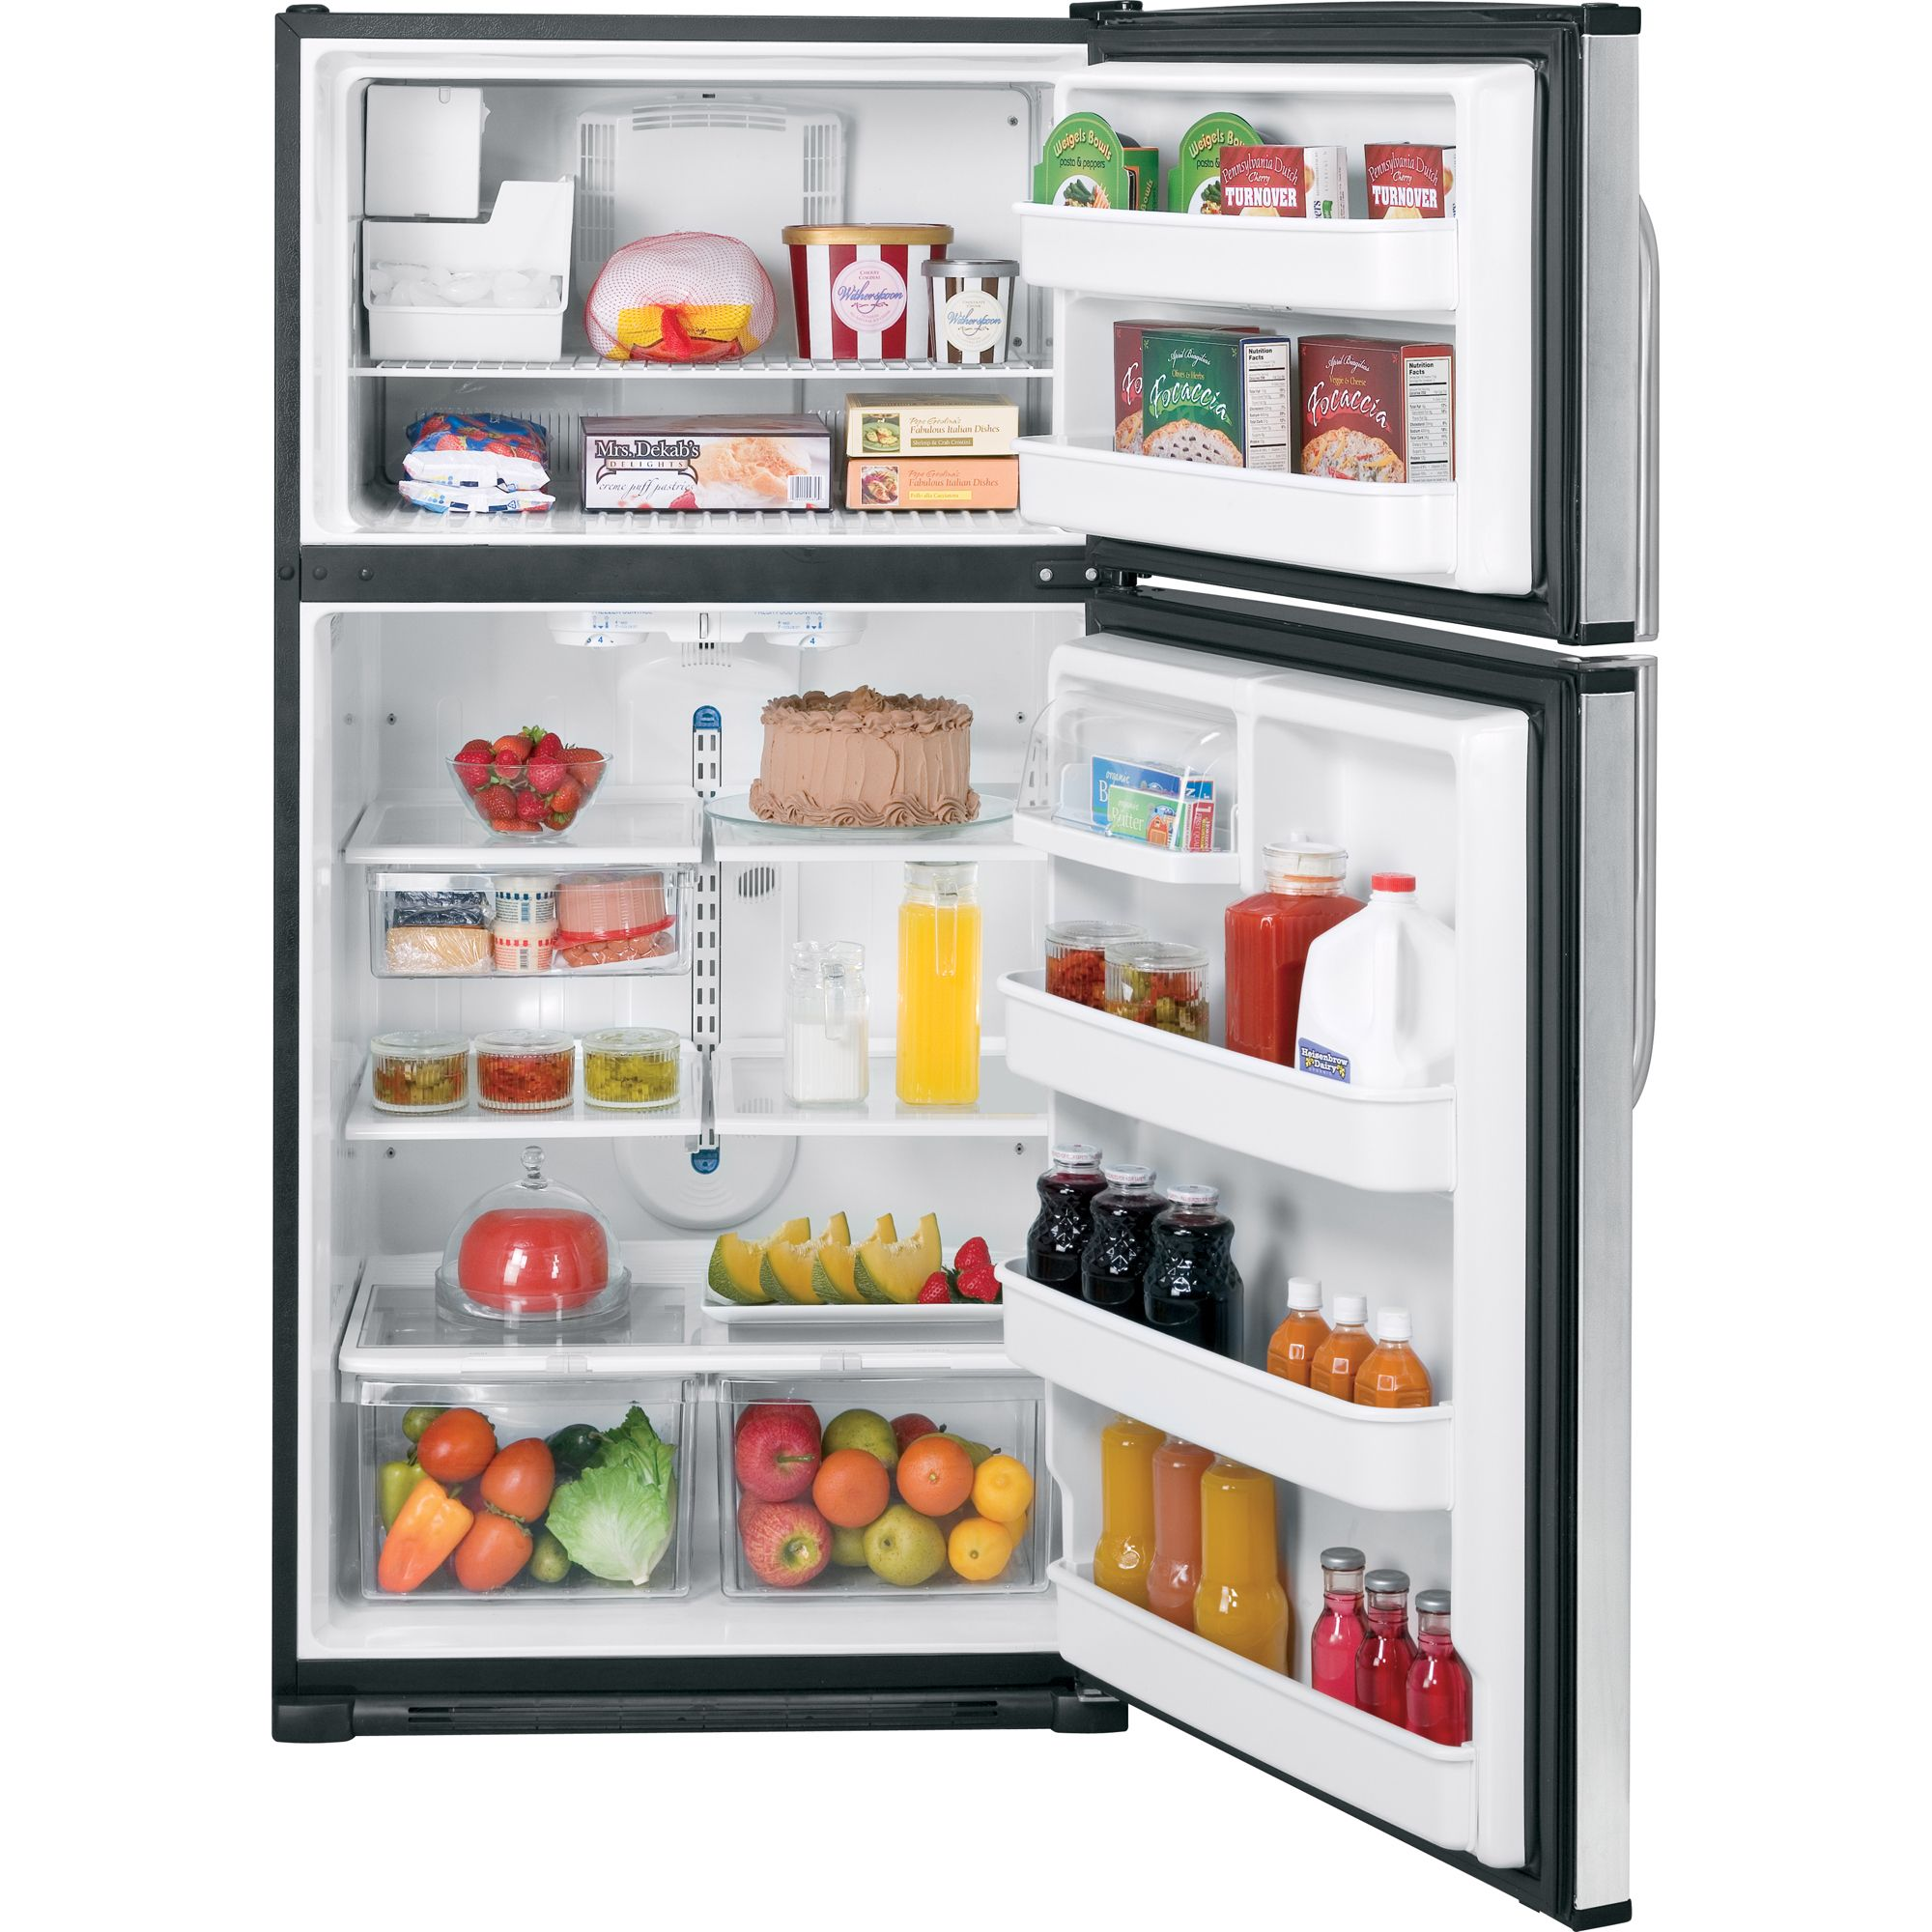 GE 21.0 cu. ft. Top Freezer Refrigerator (GTH21SCX)